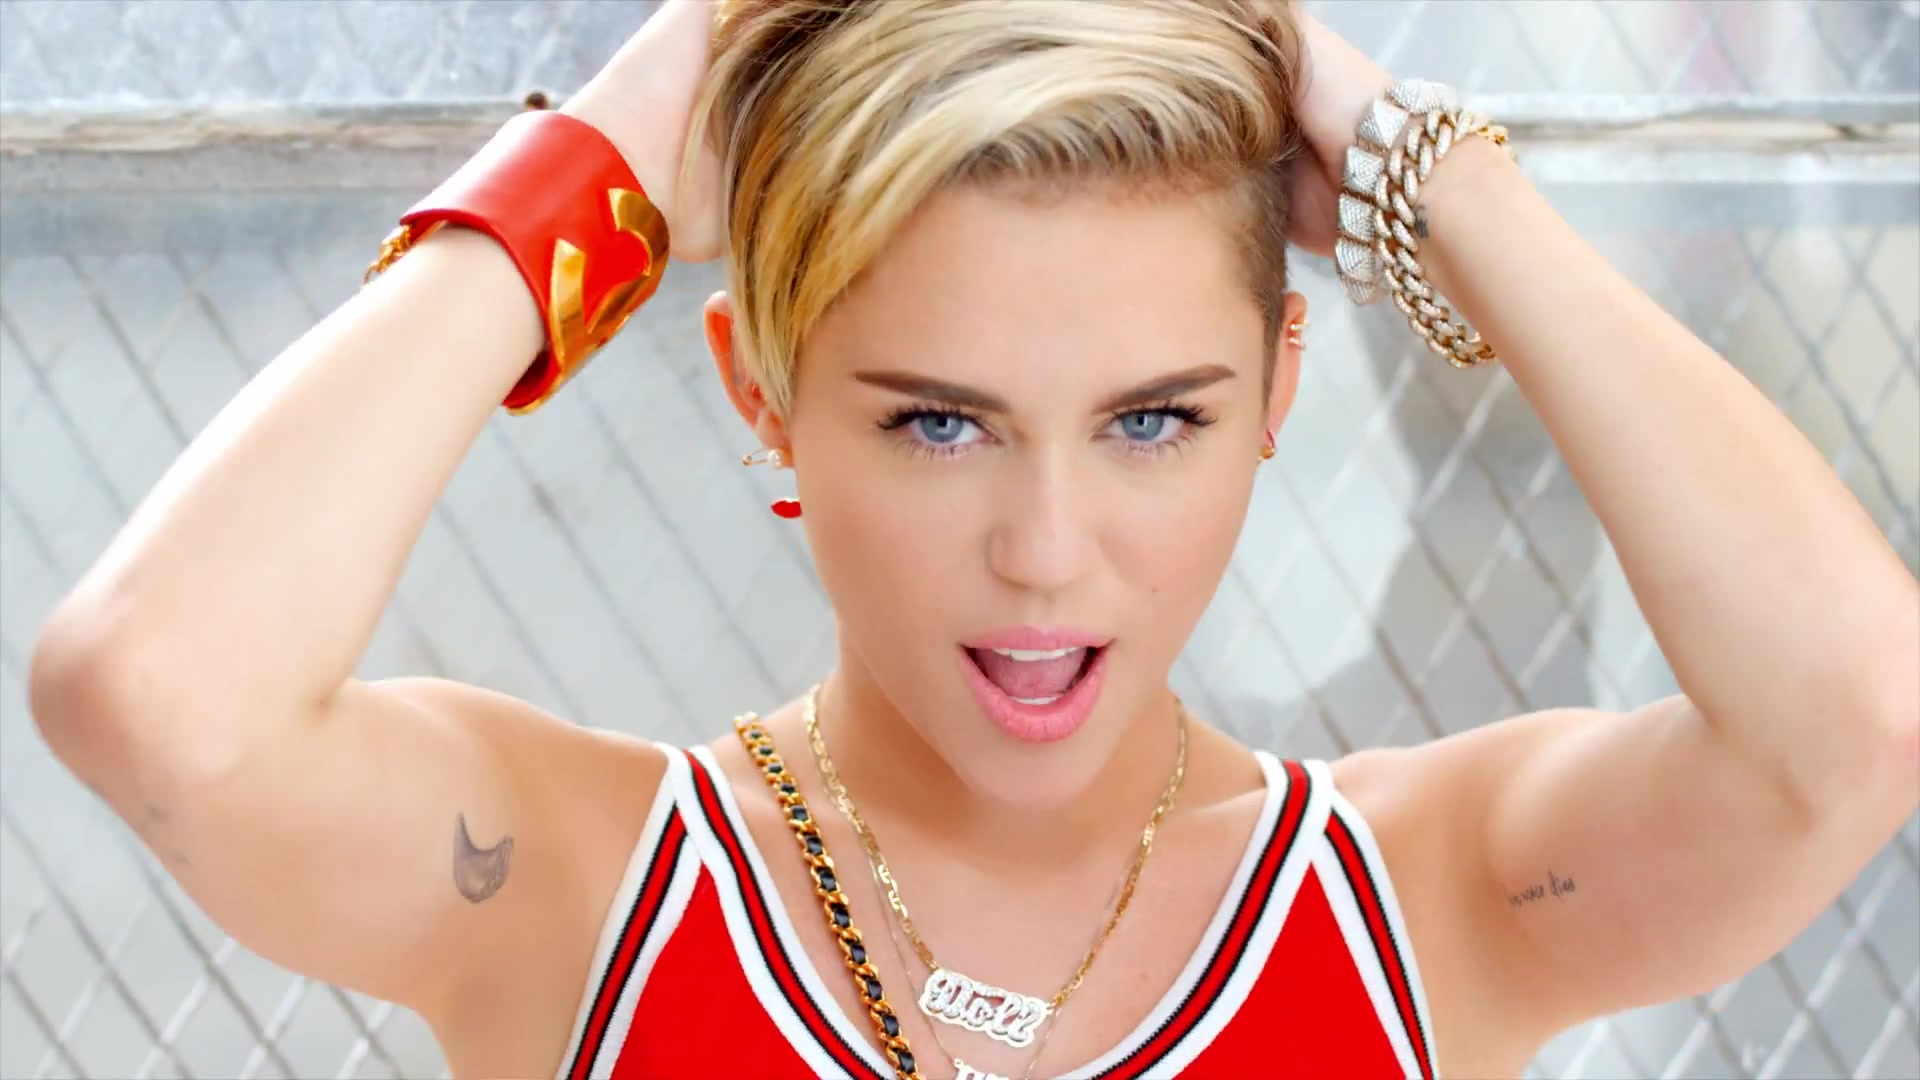 mileyfeatured